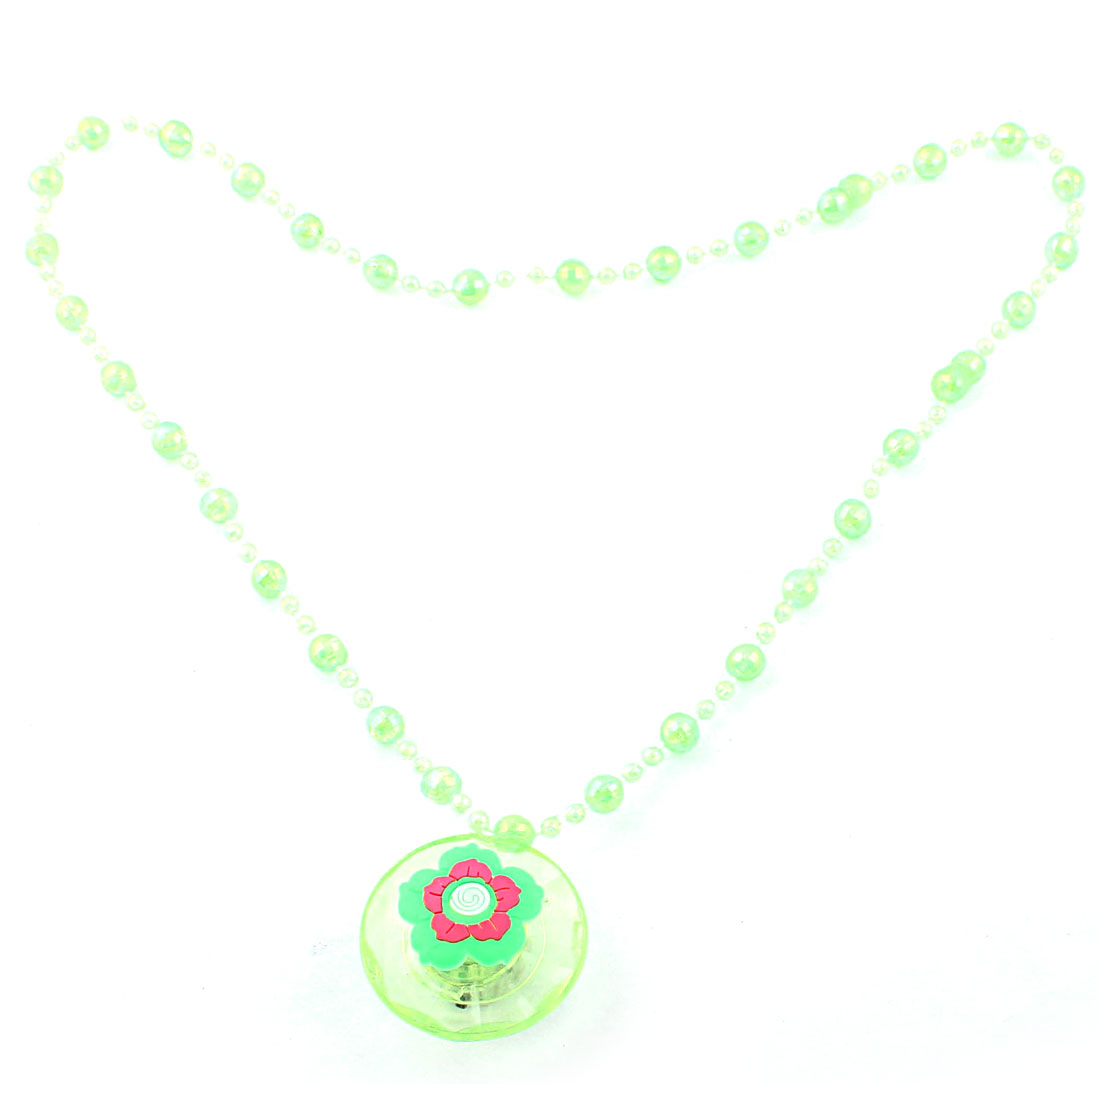 Flower Decor Round Pendant Accessory Light Up Flashing Necklace Green Clear